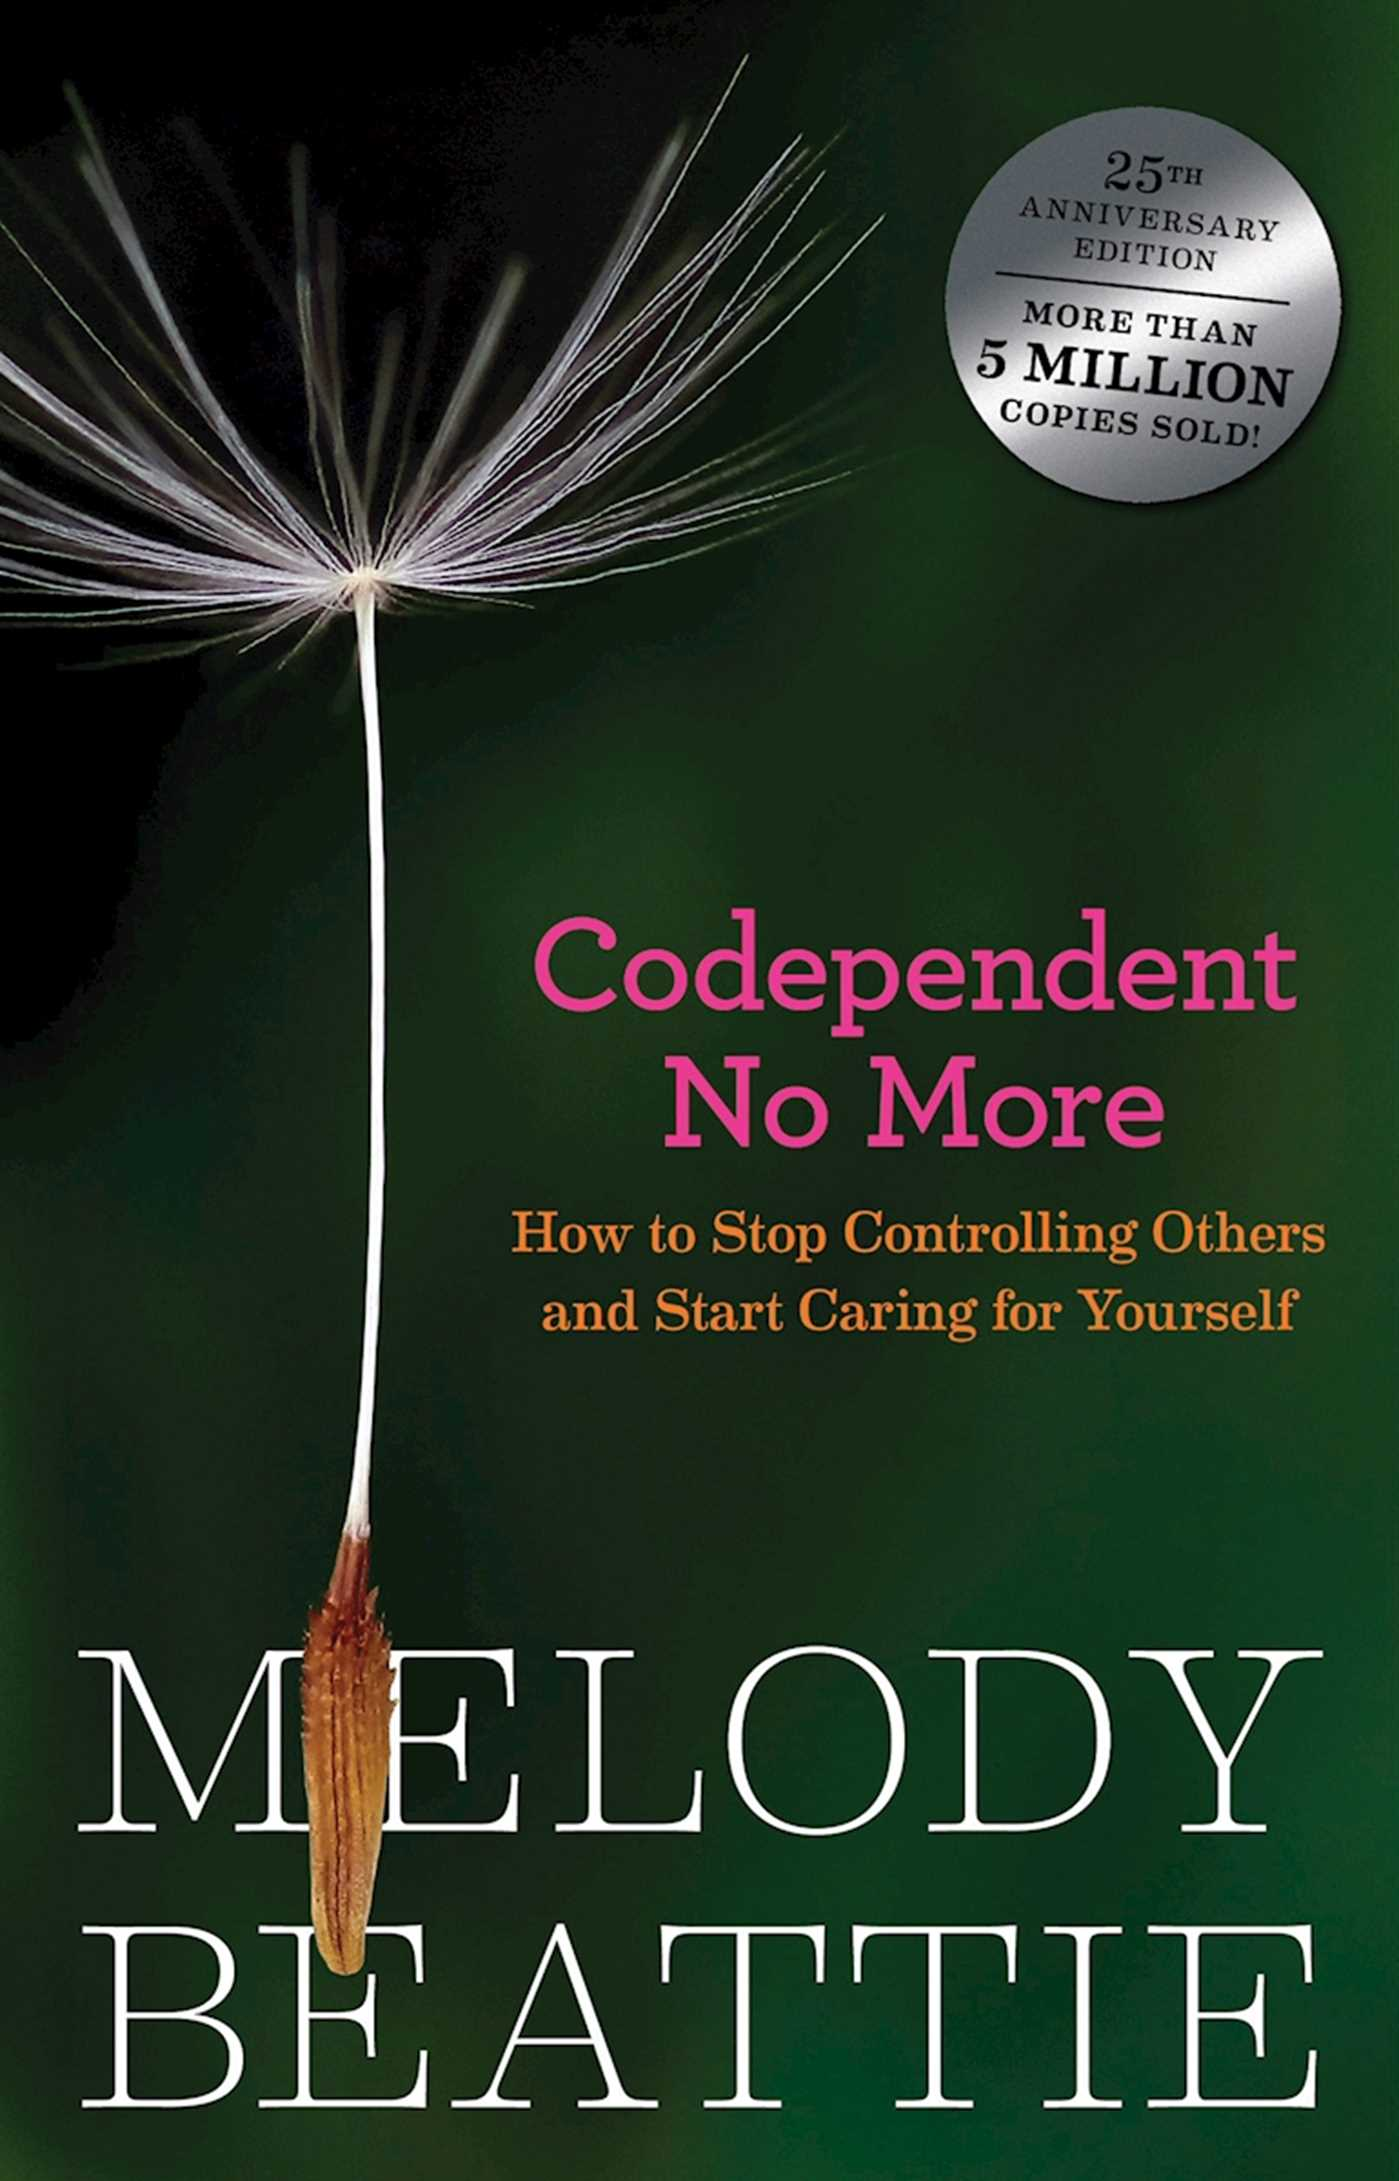 Codependent No More How to Stop Controlling Others and Start Caring for Yourself